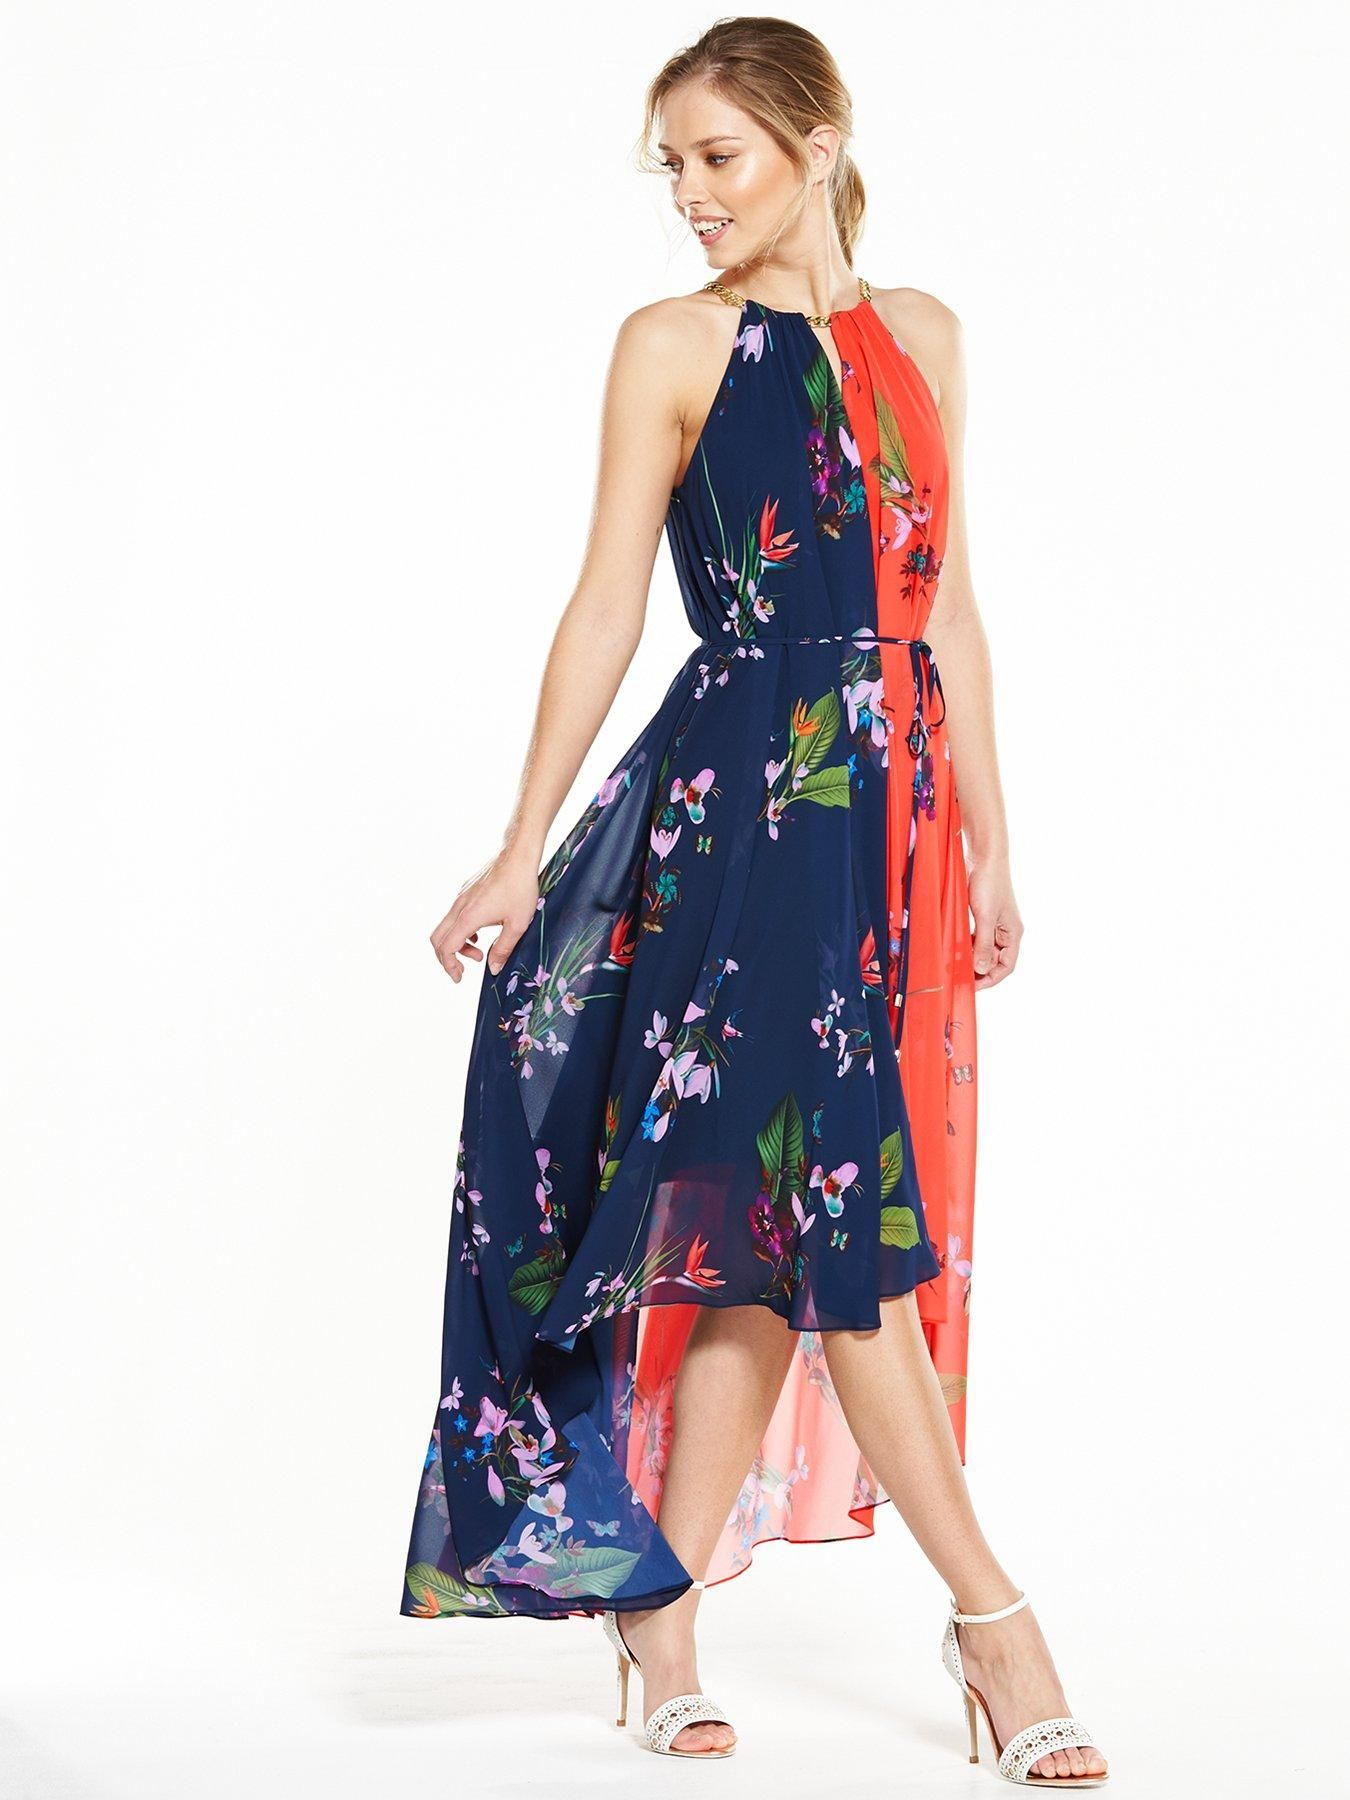 183c239768 Ted Baker Floral Printed Dress Make sure you re top of the best-dressed